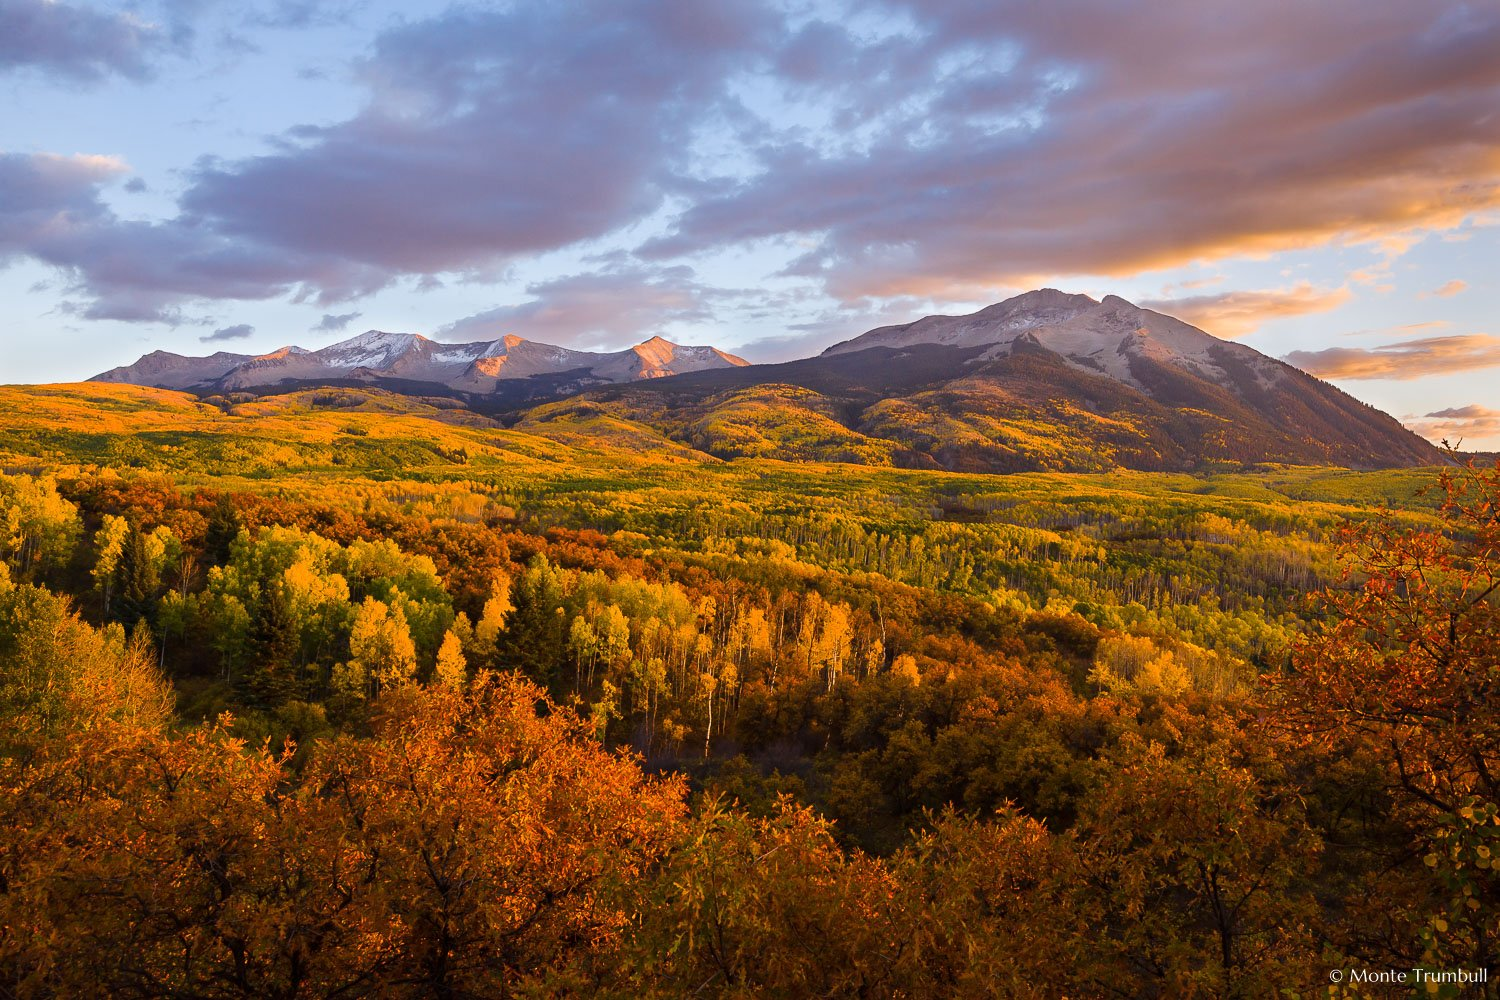 MT-20120930-184611-0001-Colorado-Beckwith-Mountains-fall-colors-sunset.jpg